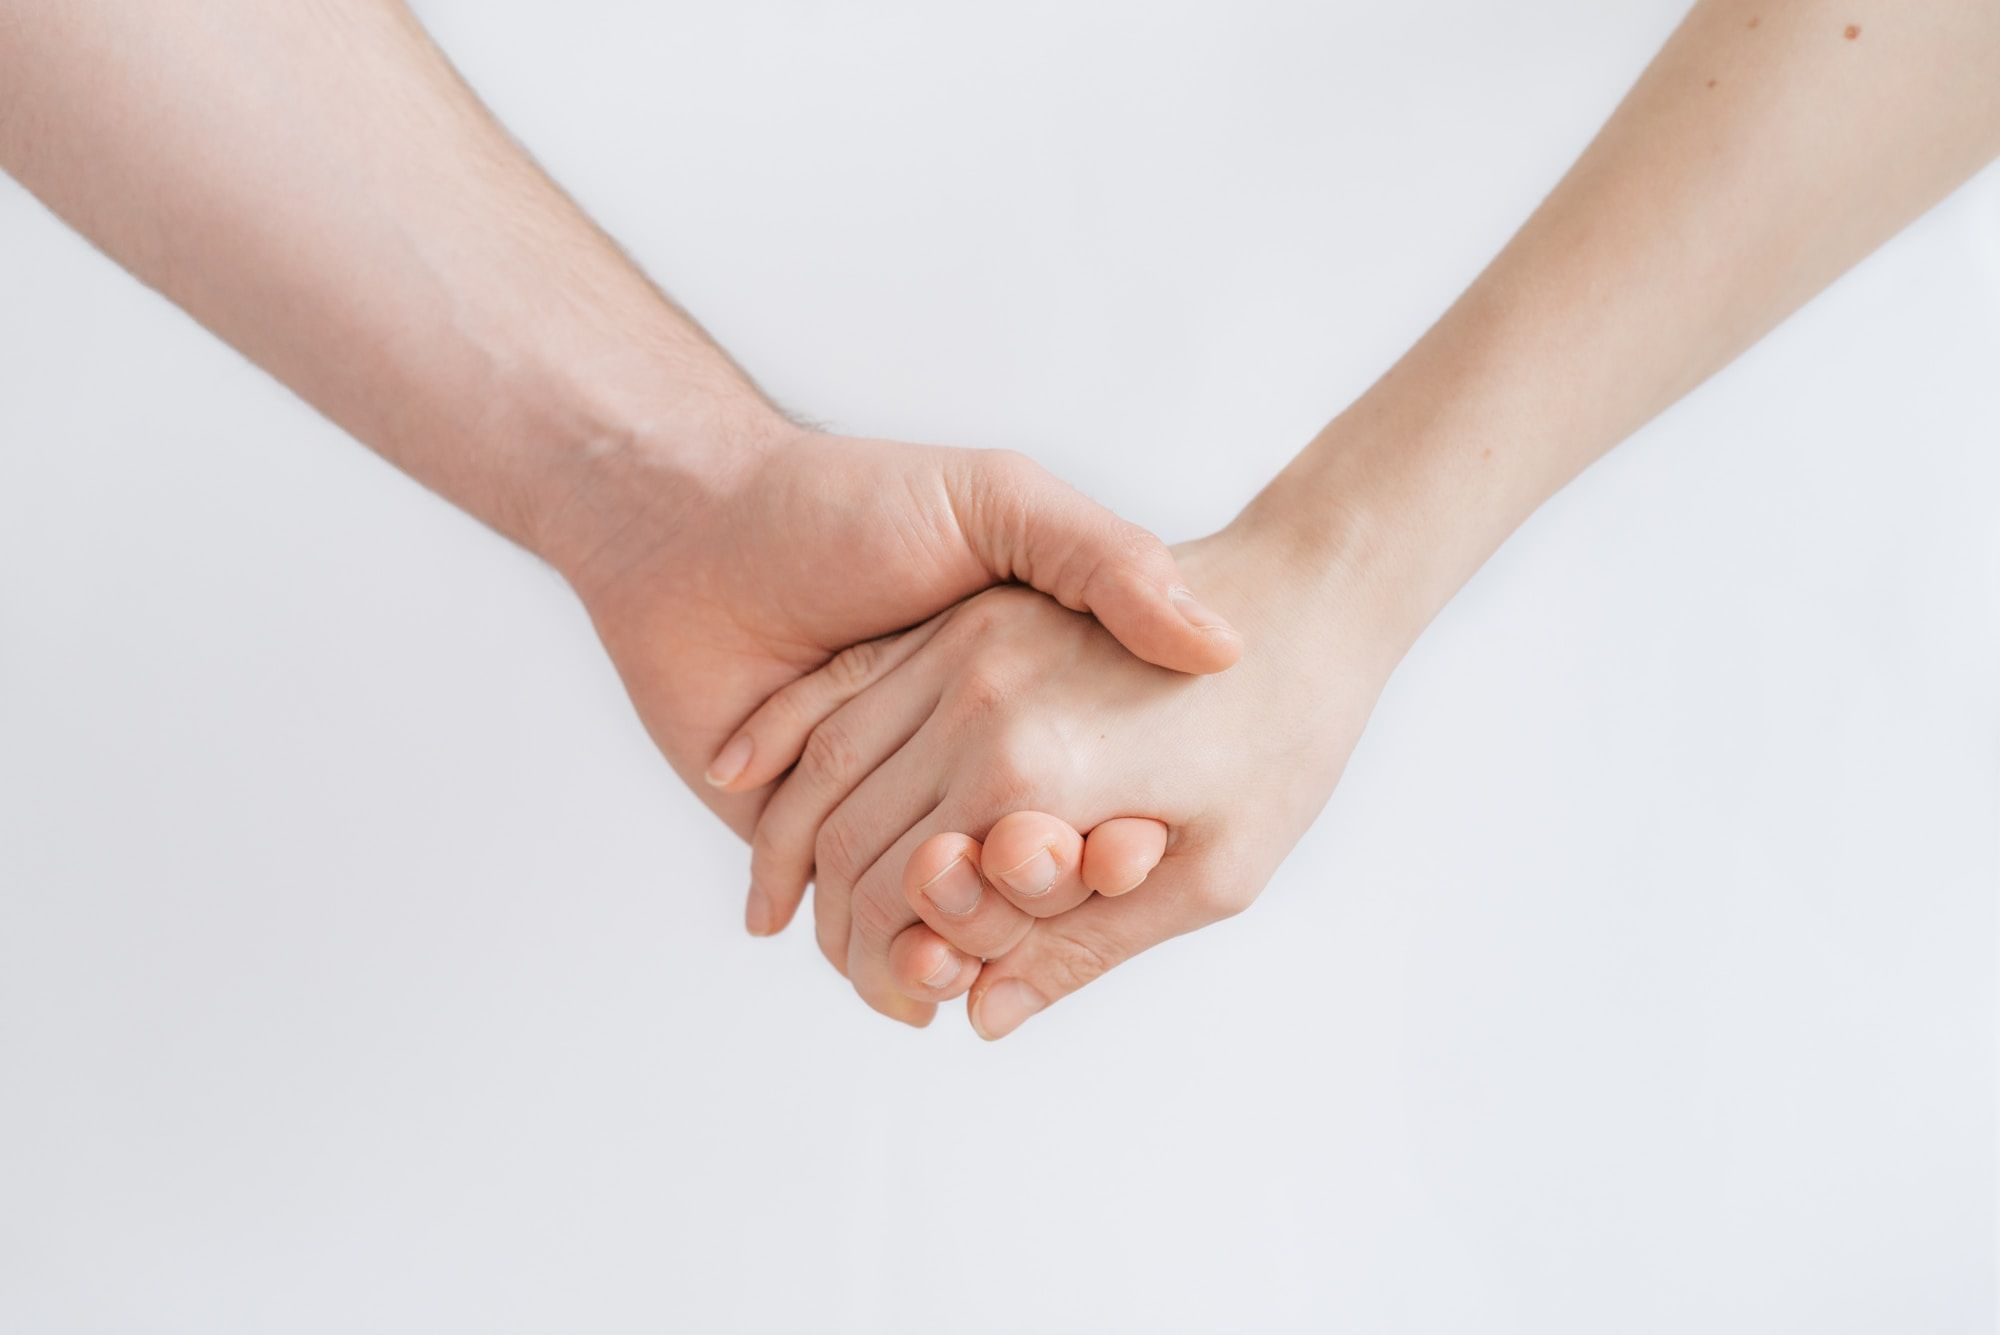 Two hands linked together, against a white background.